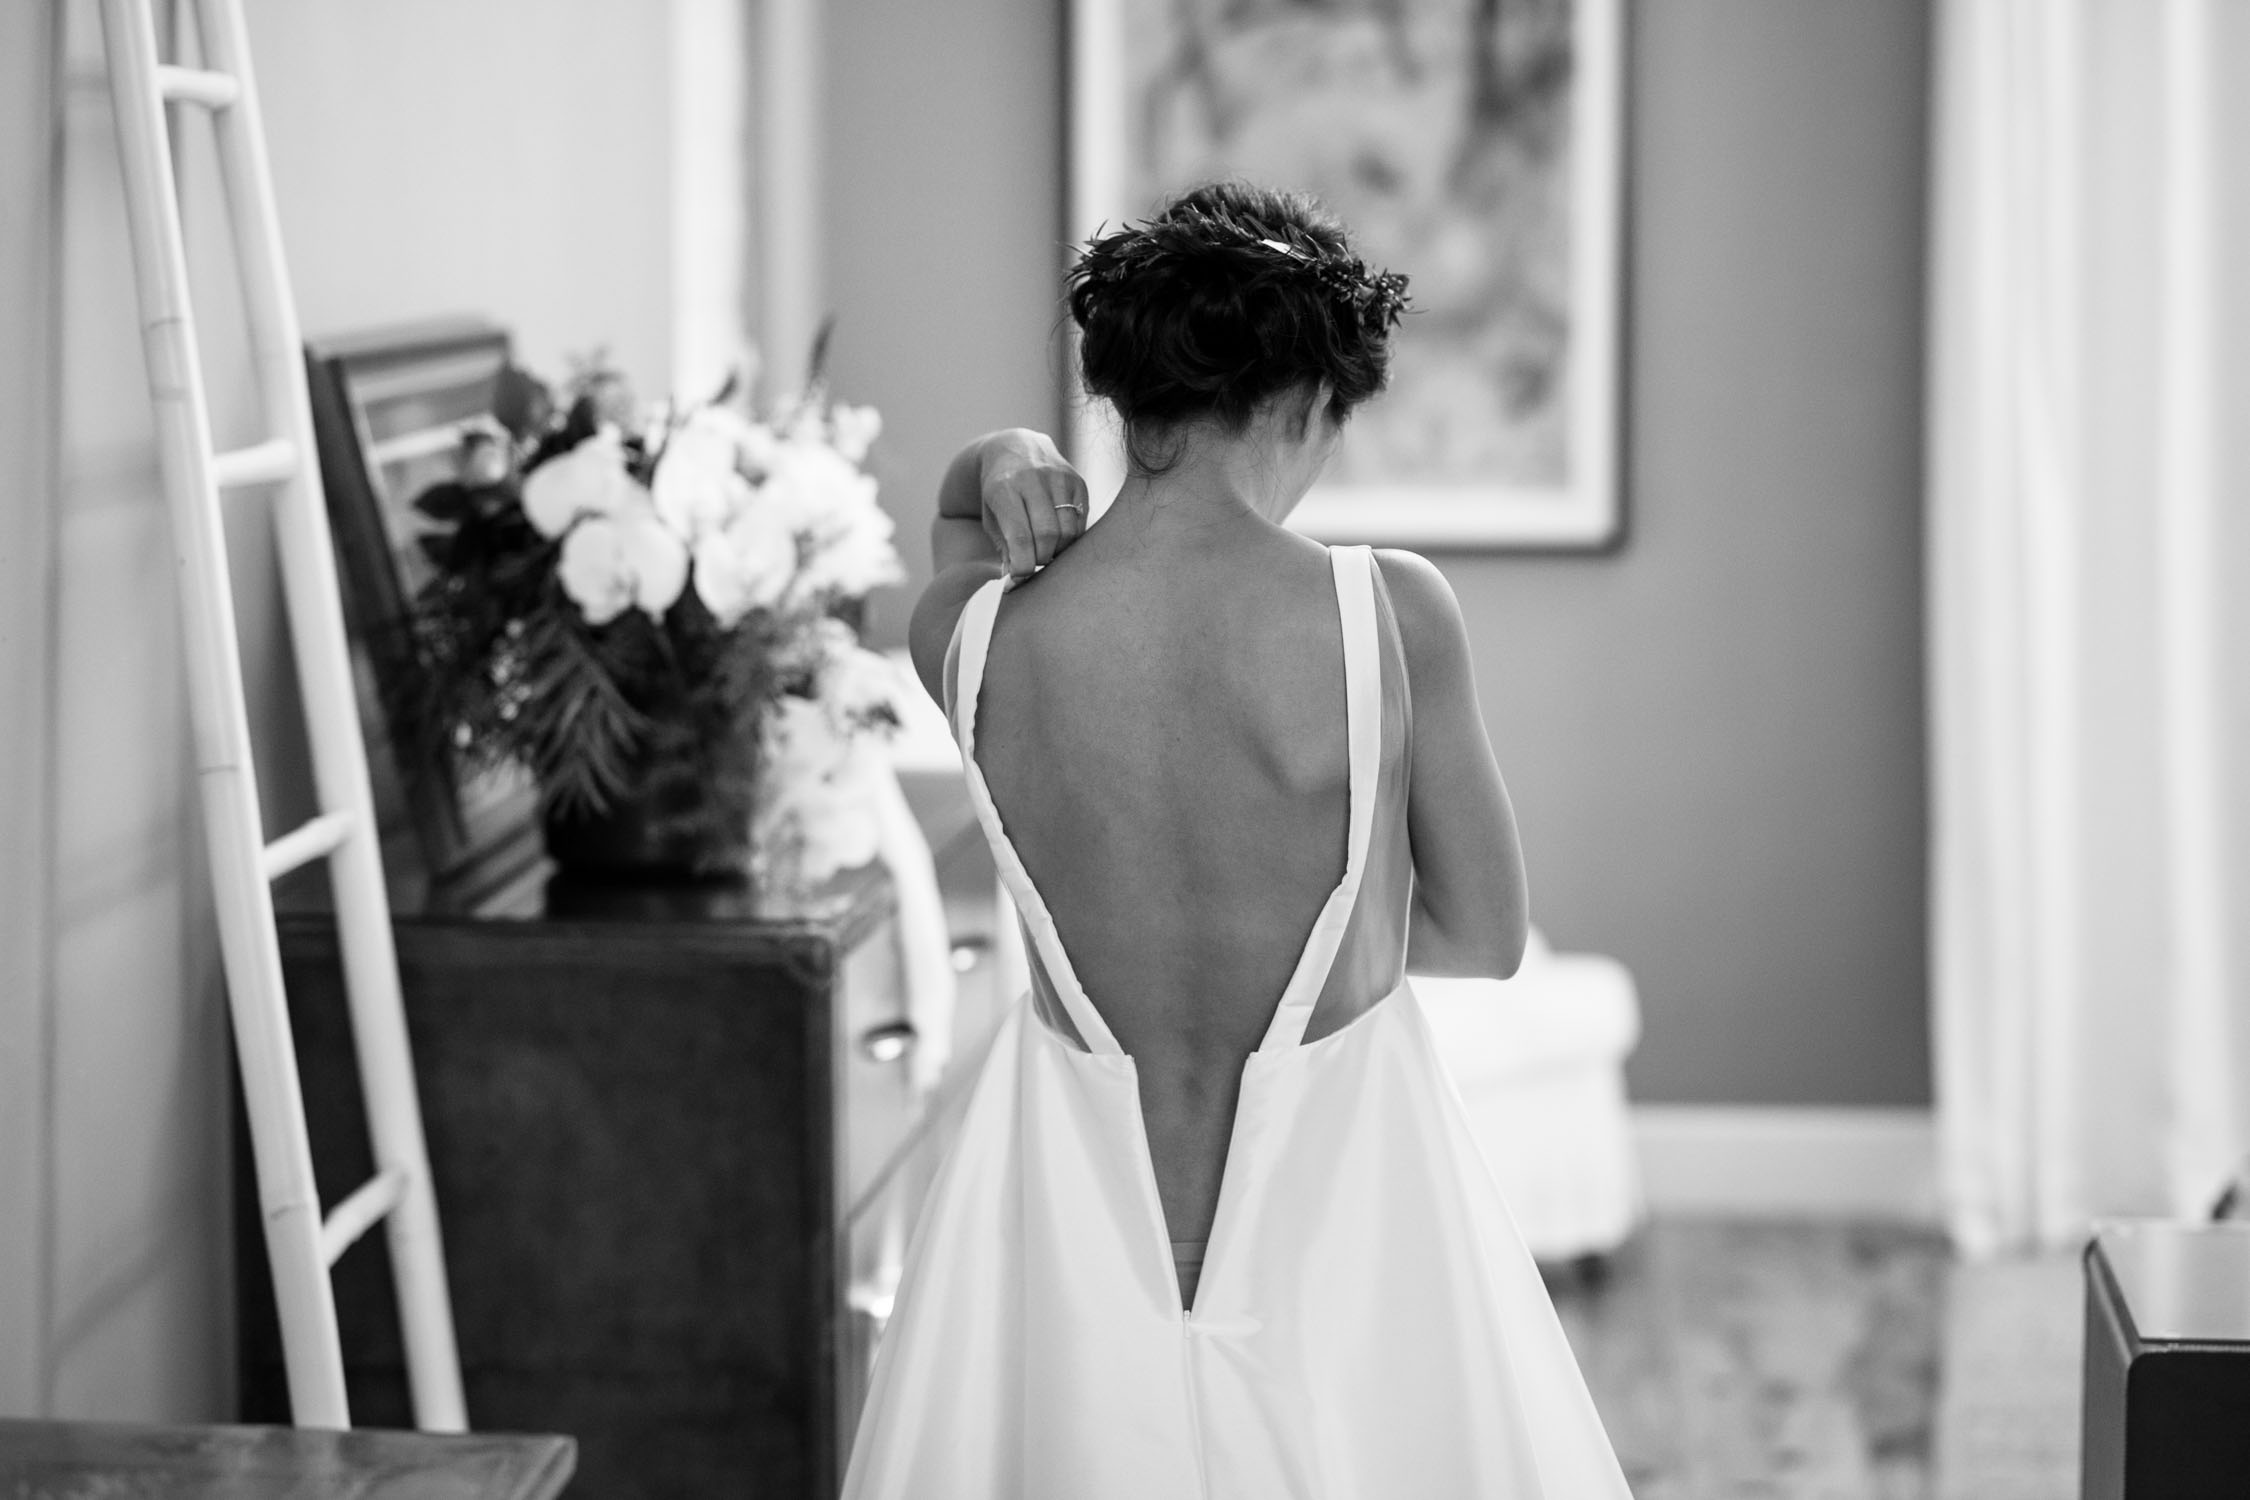 Elegant Backless Modern Sheer Wedding Dress Inspiration